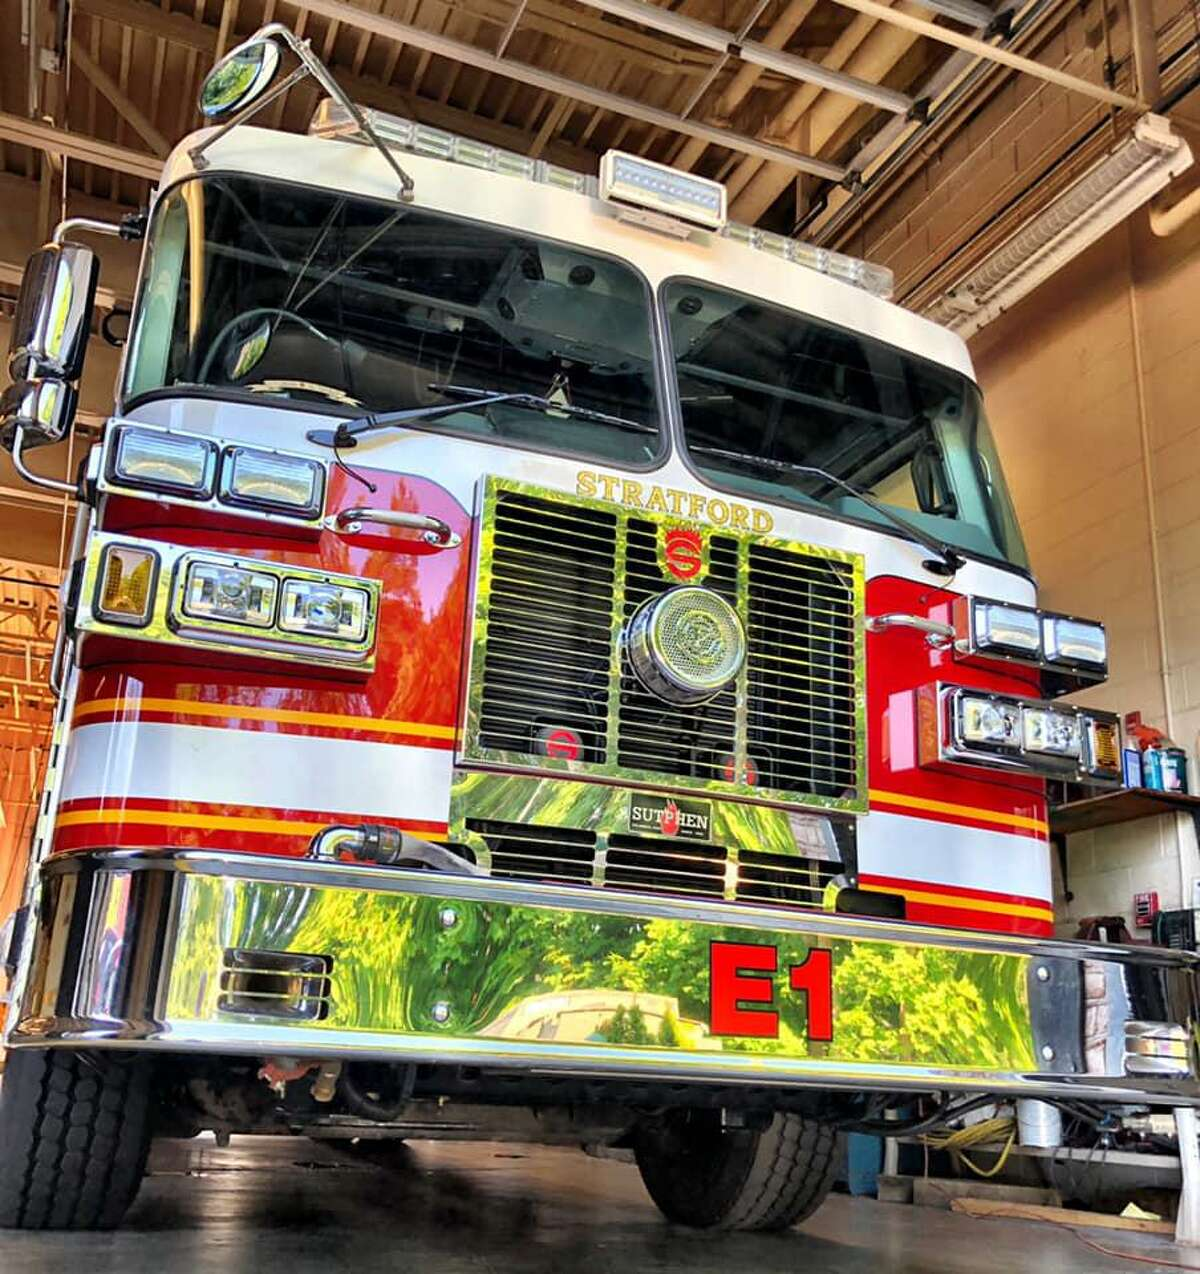 At 10:55 a.m. Tuesday, June 22, 2021, fire units were dispatched to the Stratford Housing Authority apartments at 44 Leeward Drive in Stratford, Conn., for a reported structure fire.